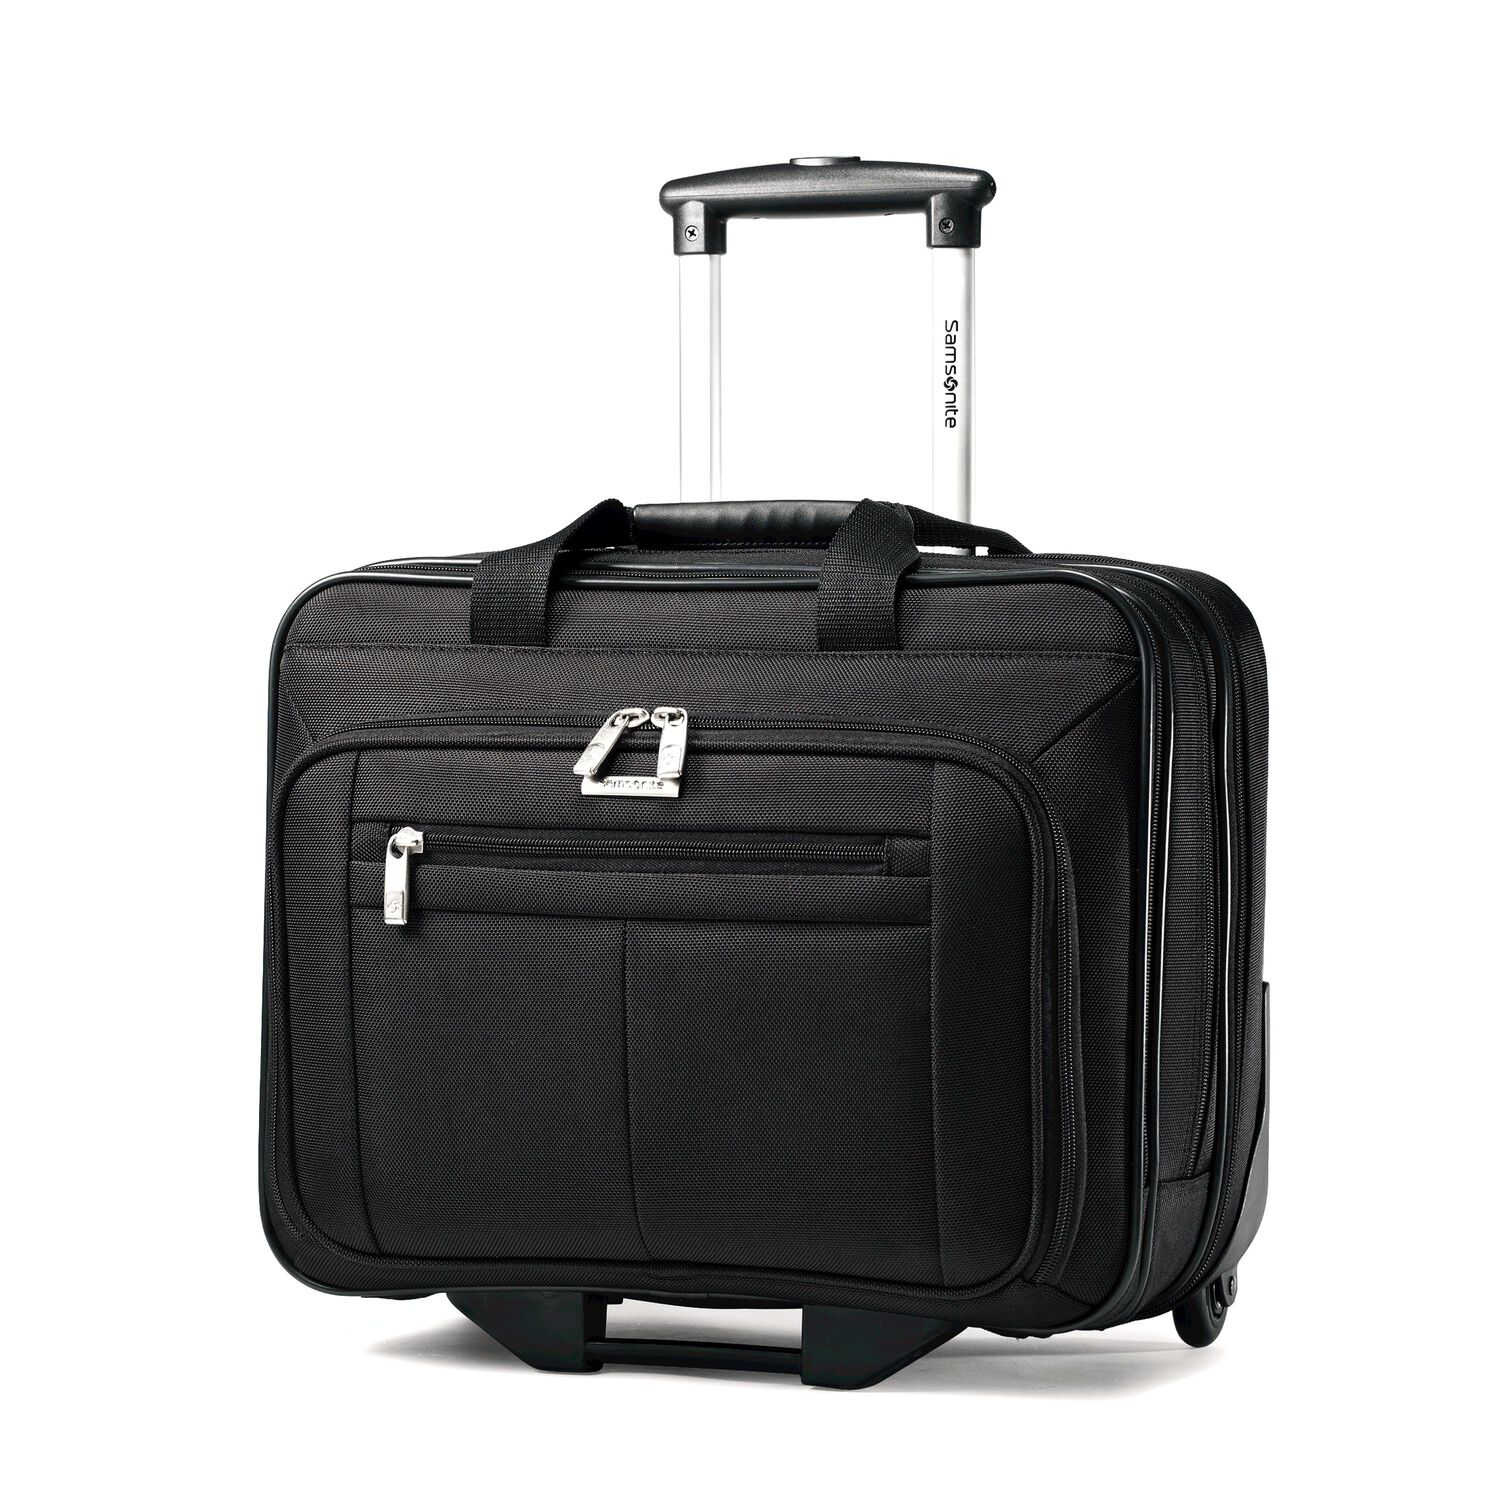 Samsonite Classic Business Wheeled Case In The Color Black